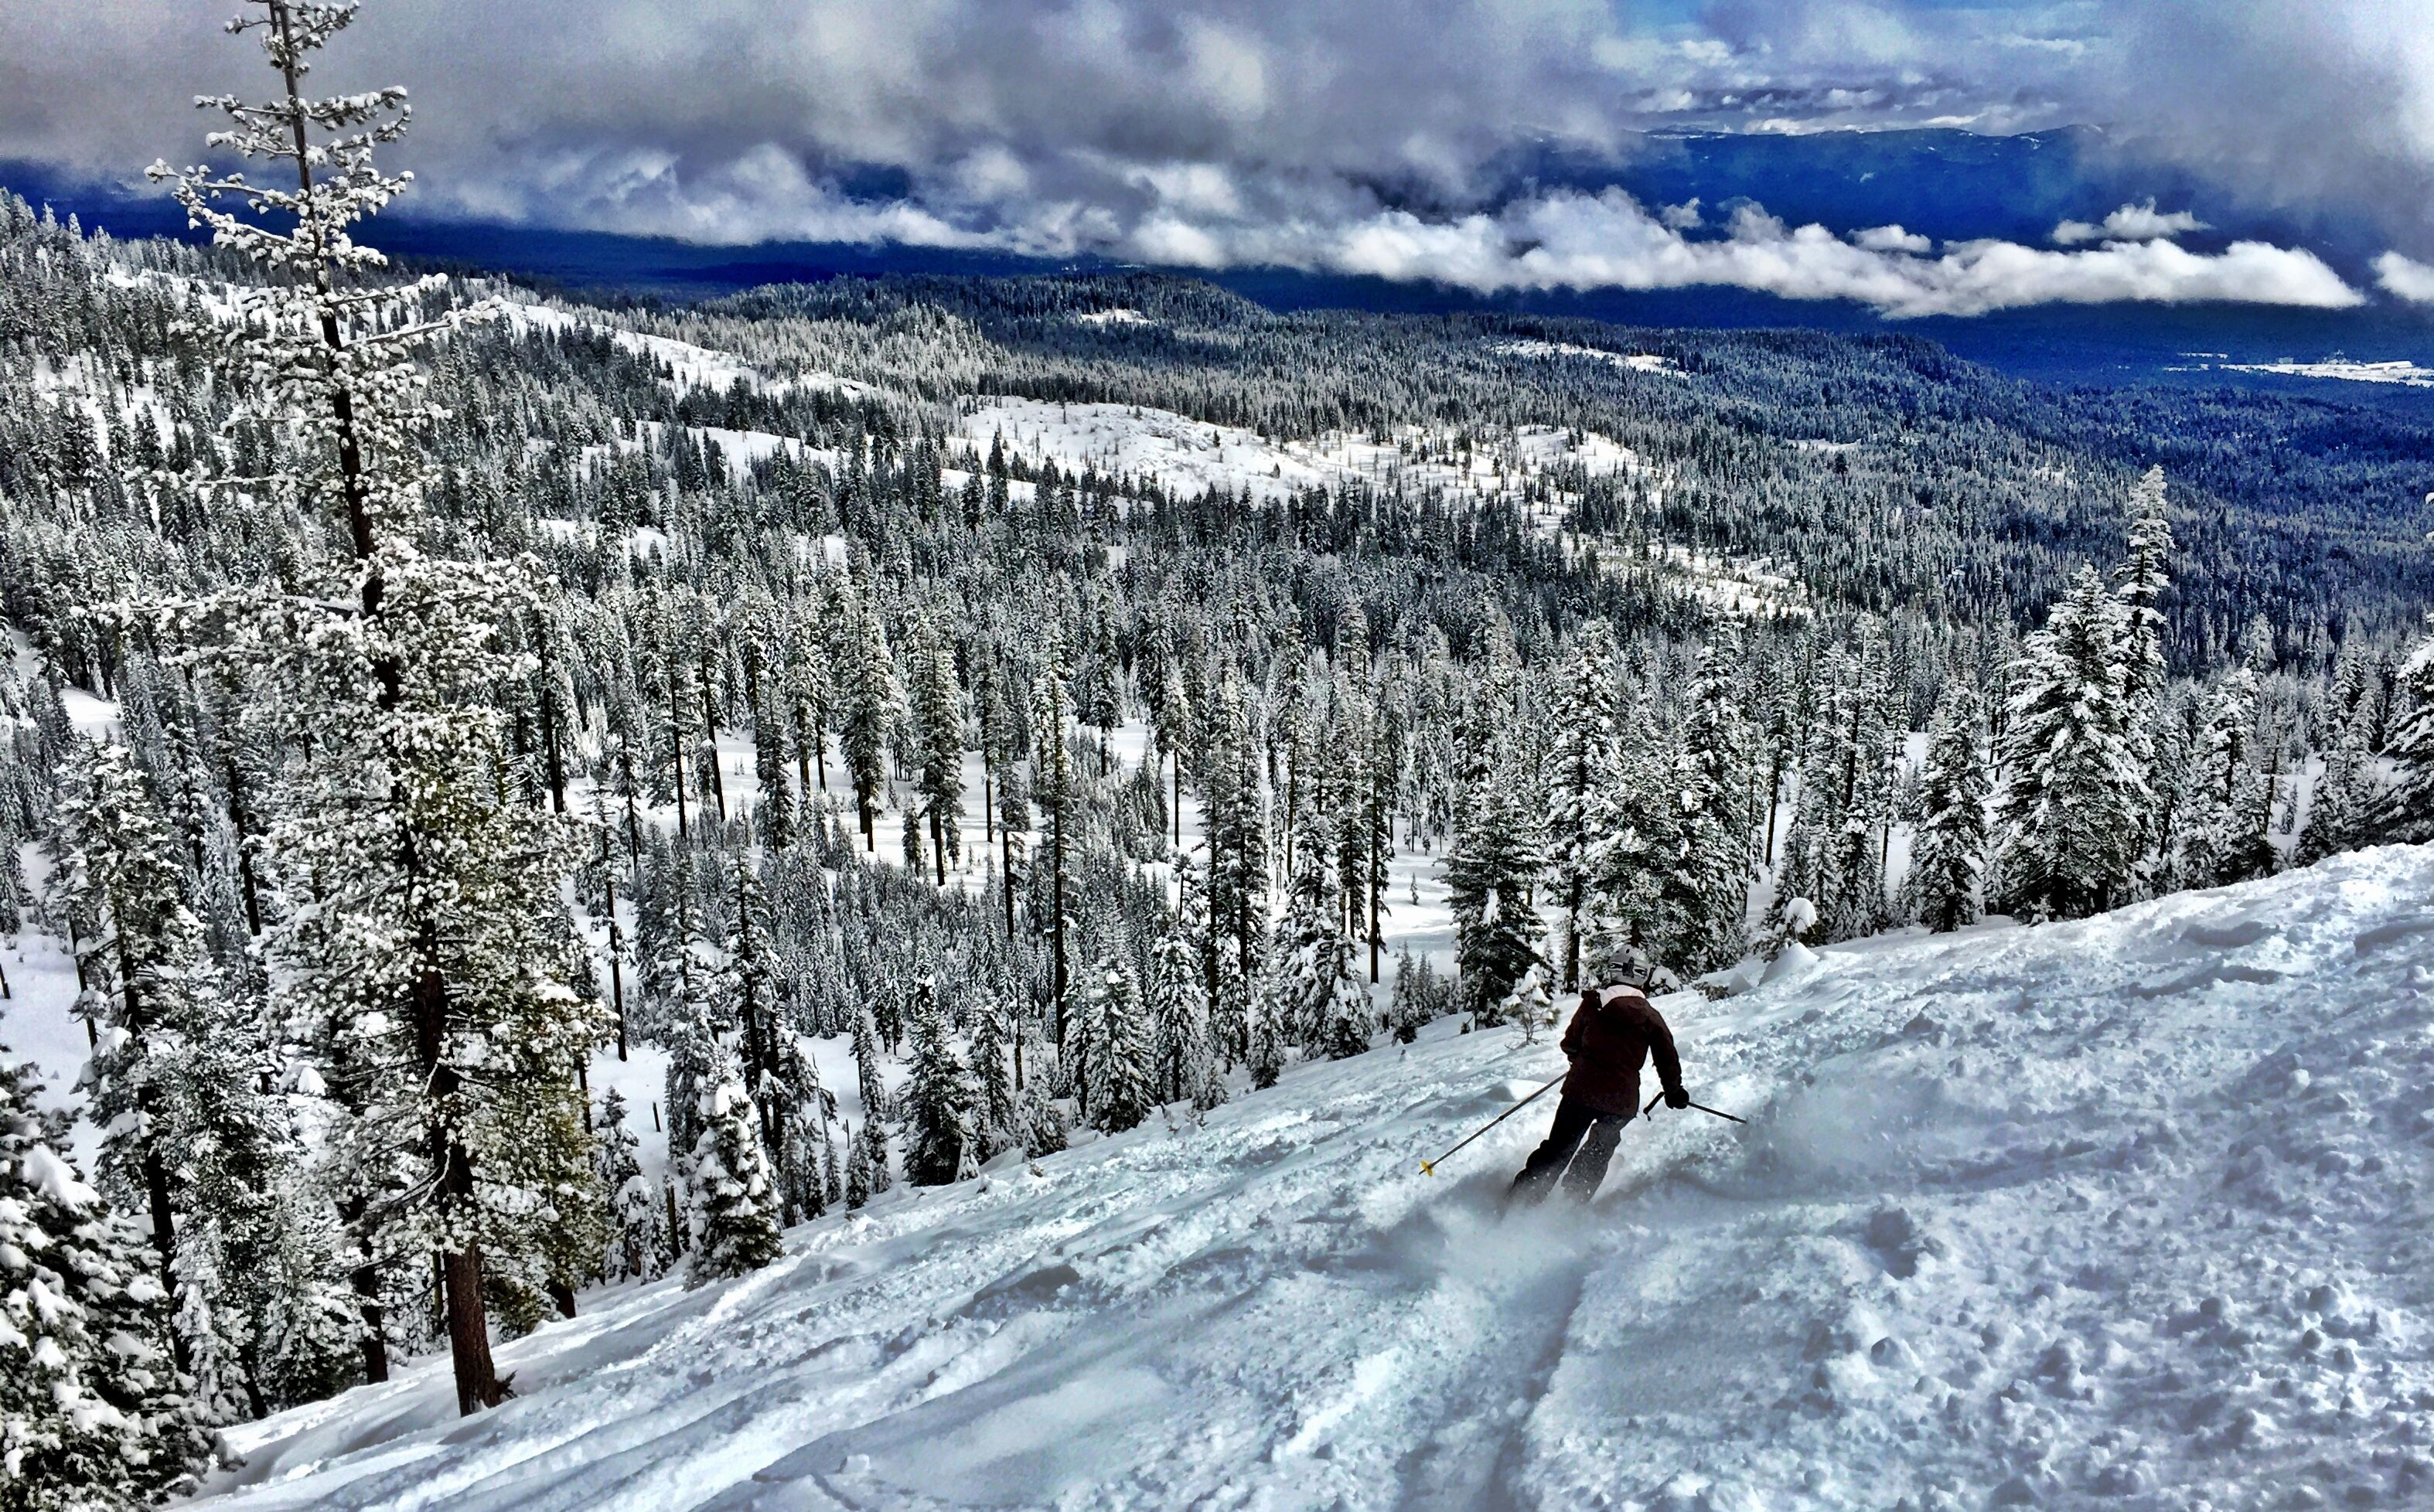 Sneaking a few turns in the Mt Shasta CA sidecountry.  #mountains #backcountry #ski